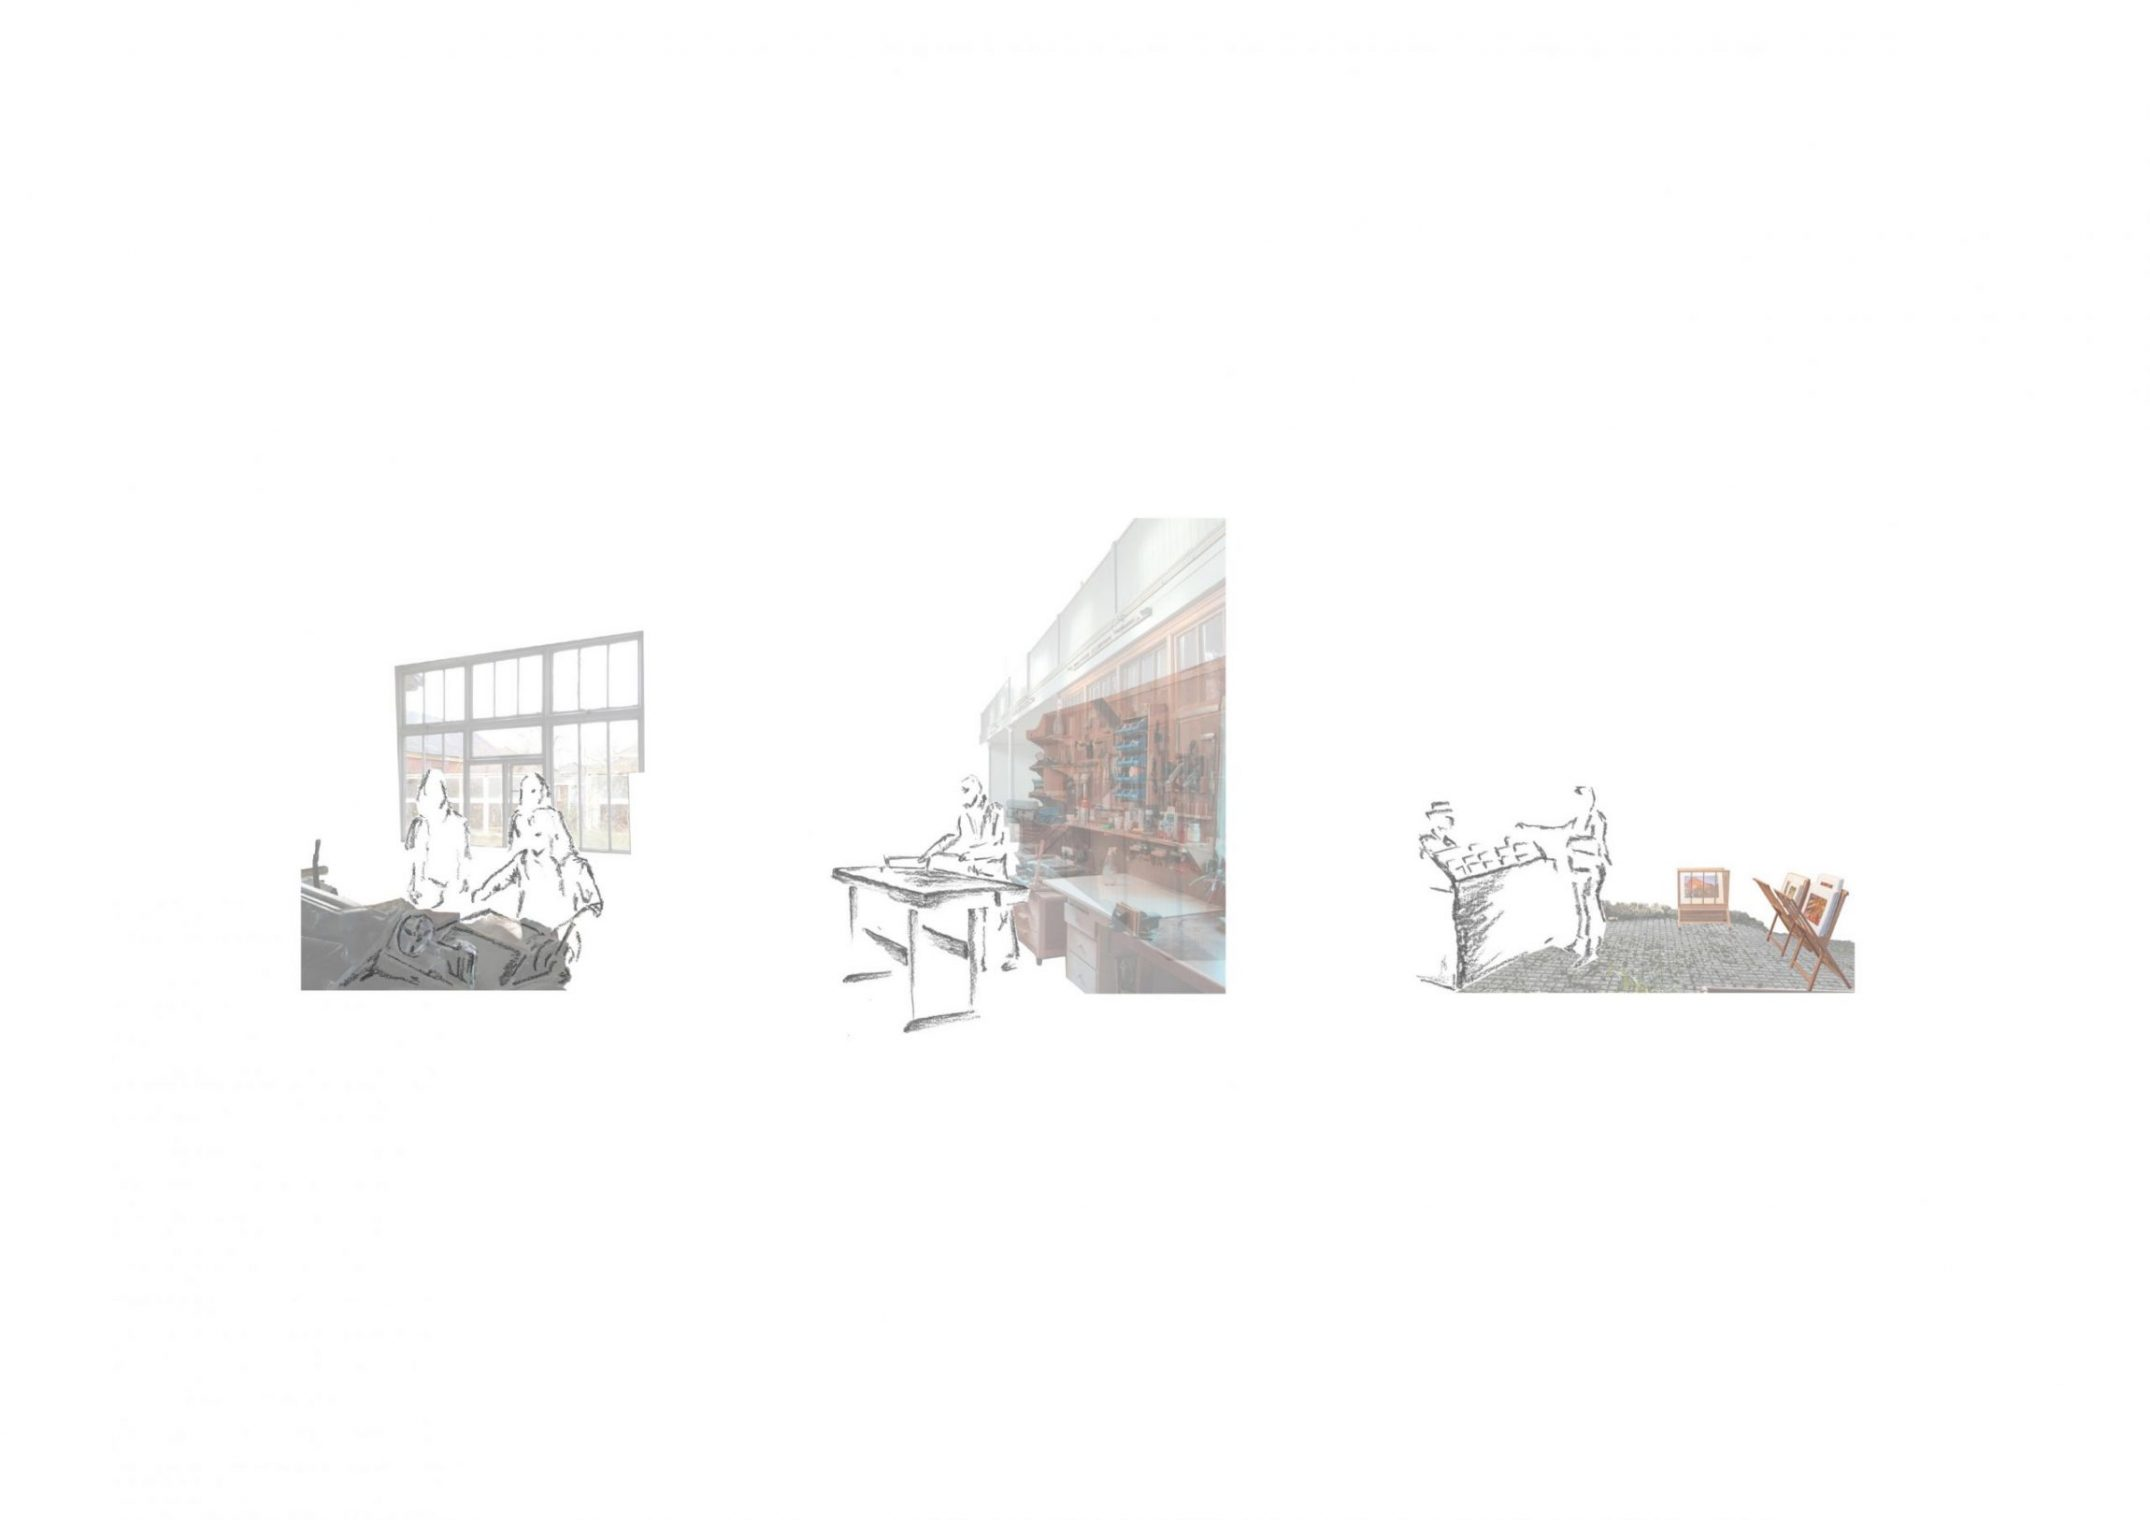 Three perspective drawings showing the activities available at the proposed Artists Resident Scheme at Whitchurch.